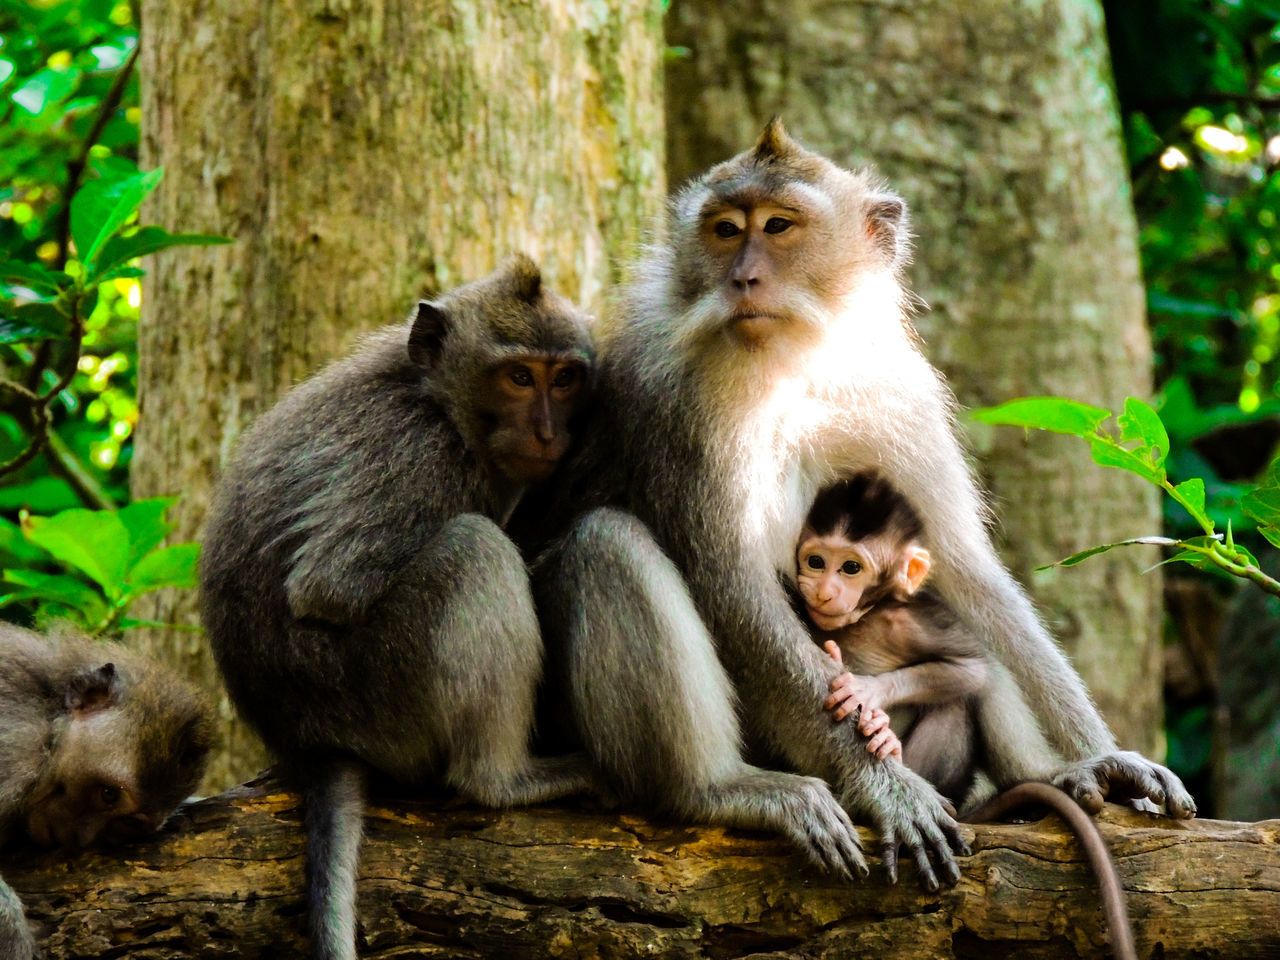 animals in the wild, animal themes, two animals, animal family, togetherness, animal wildlife, mammal, monkey, day, young animal, outdoors, nature, sitting, no people, tree trunk, forest, tree, portrait, close-up